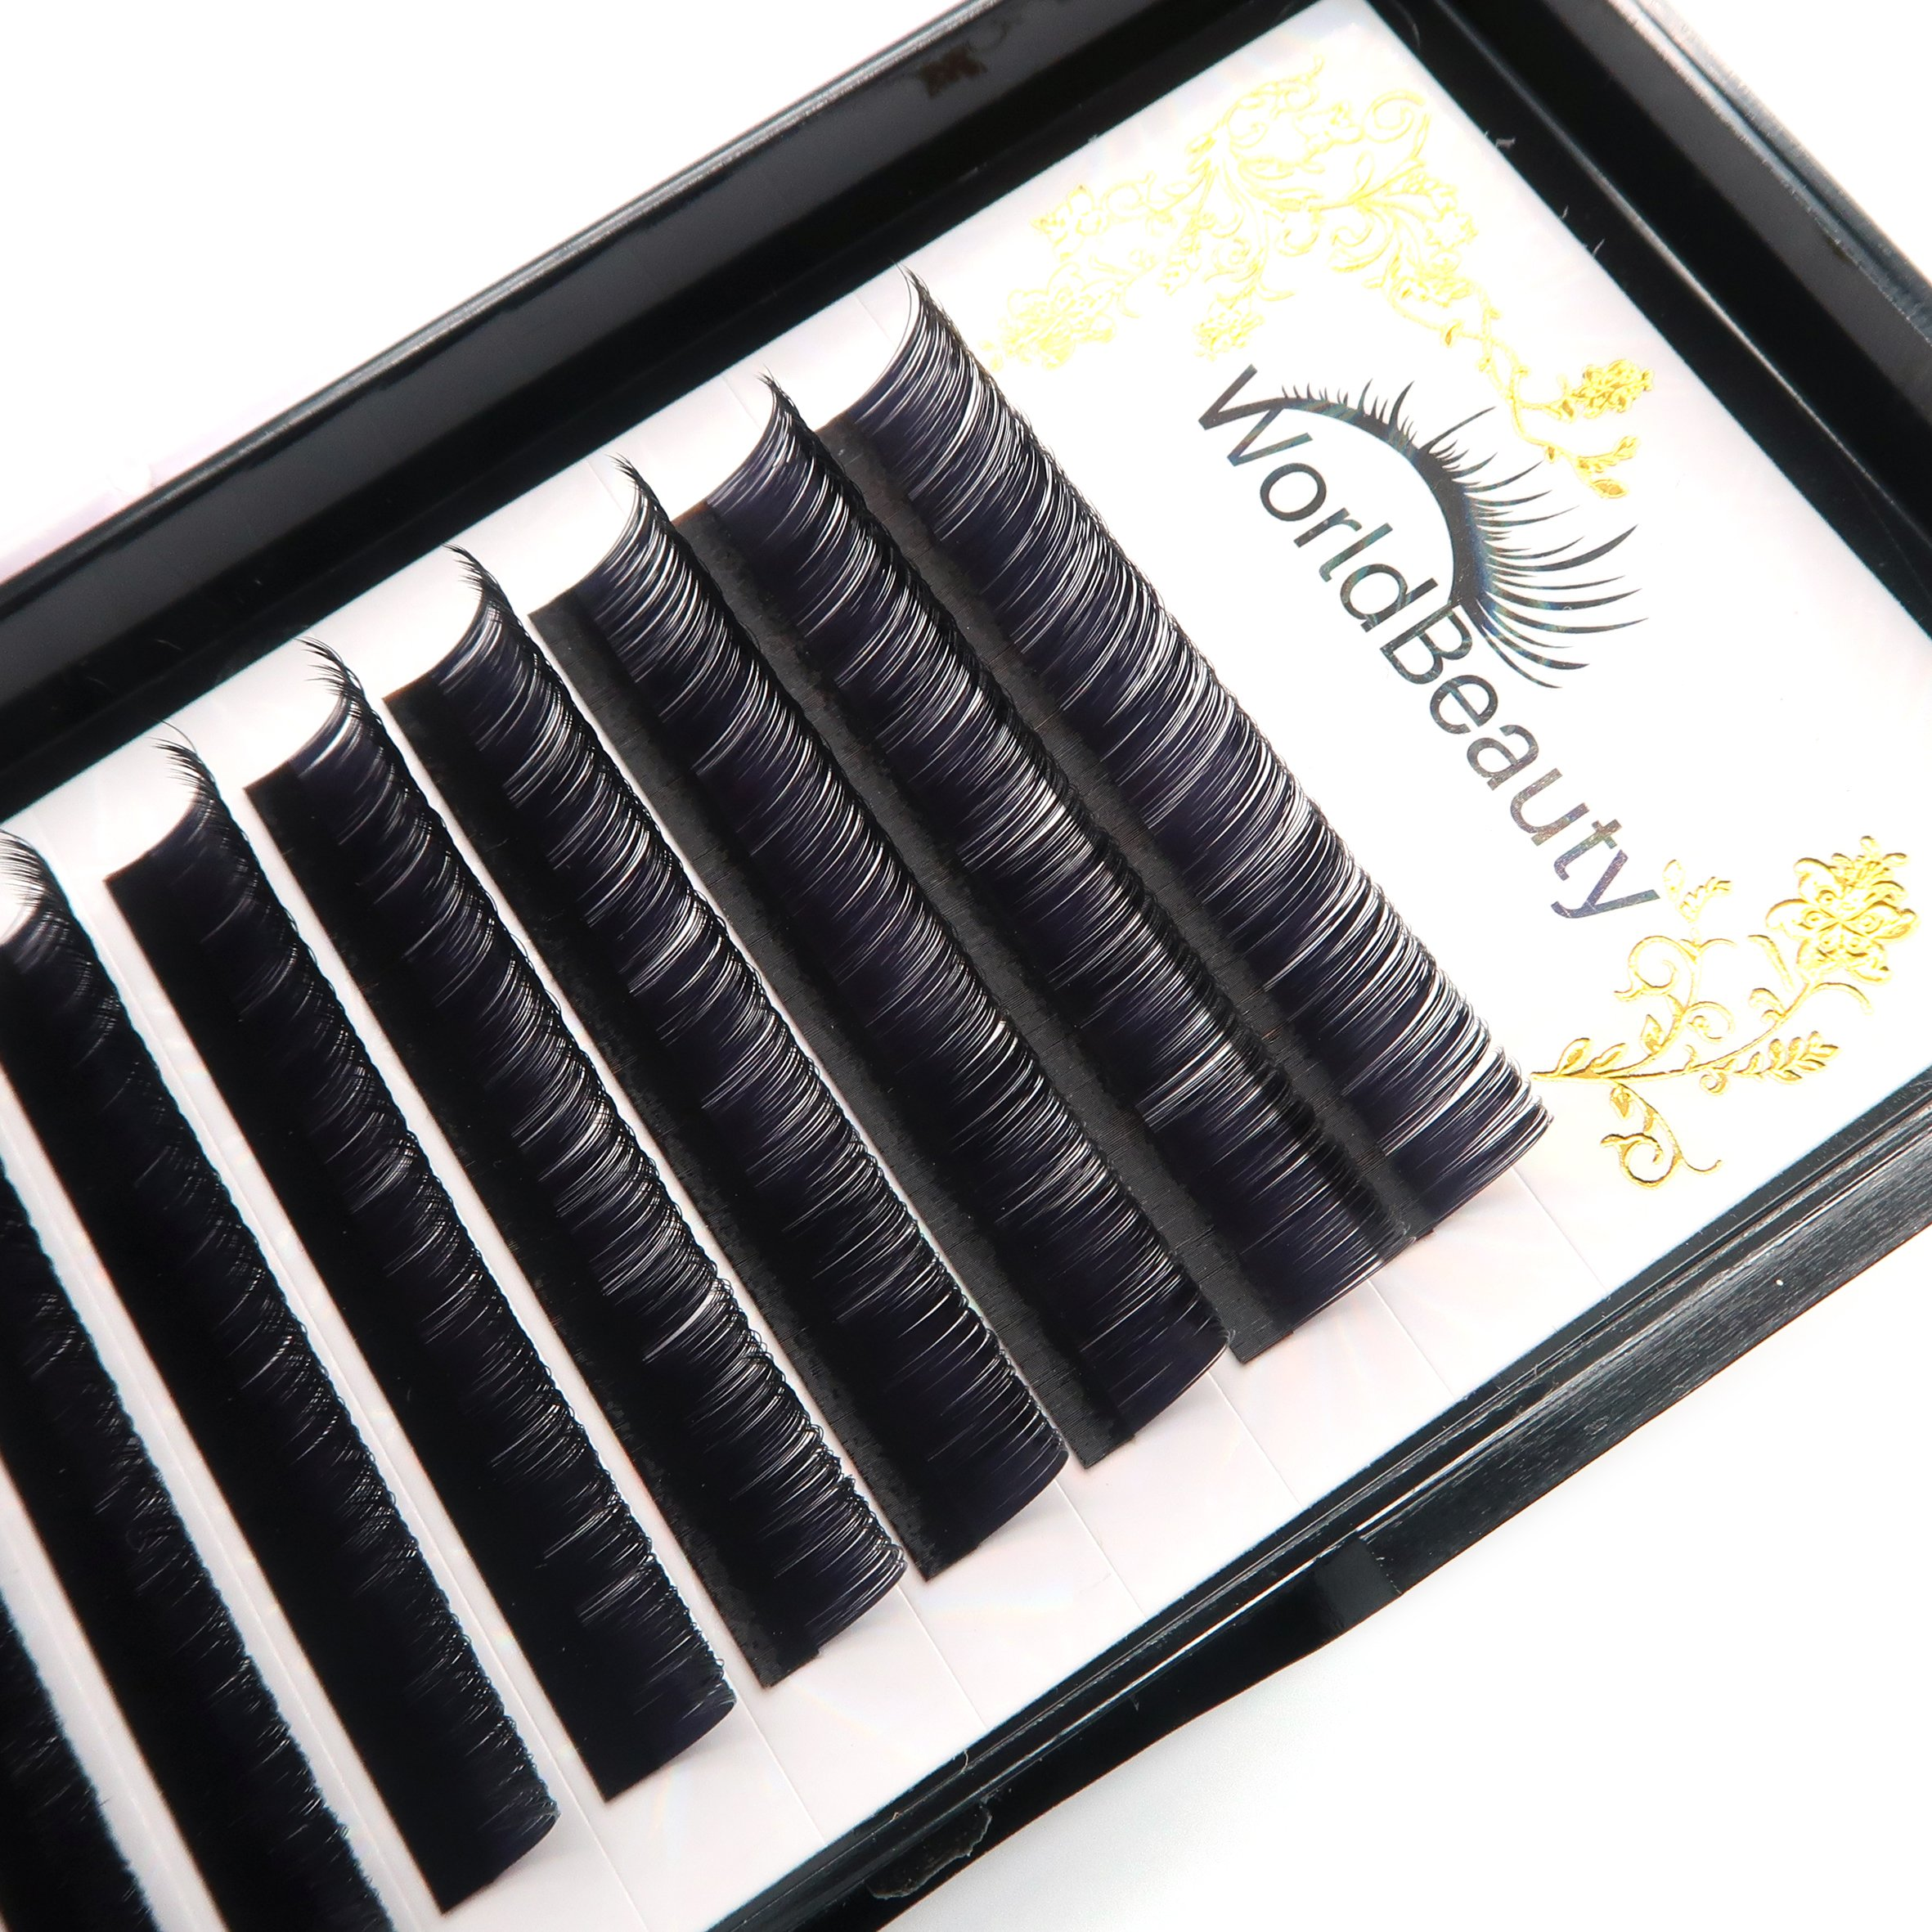 7a96e70a3e0 Amazon.com : Professional Classic Eyelash Extensions C Curl 0.20mm 14mm Silk  Individual Natural Black Faux Mink Lash Extensions Suppliers for Salon Use  : ...